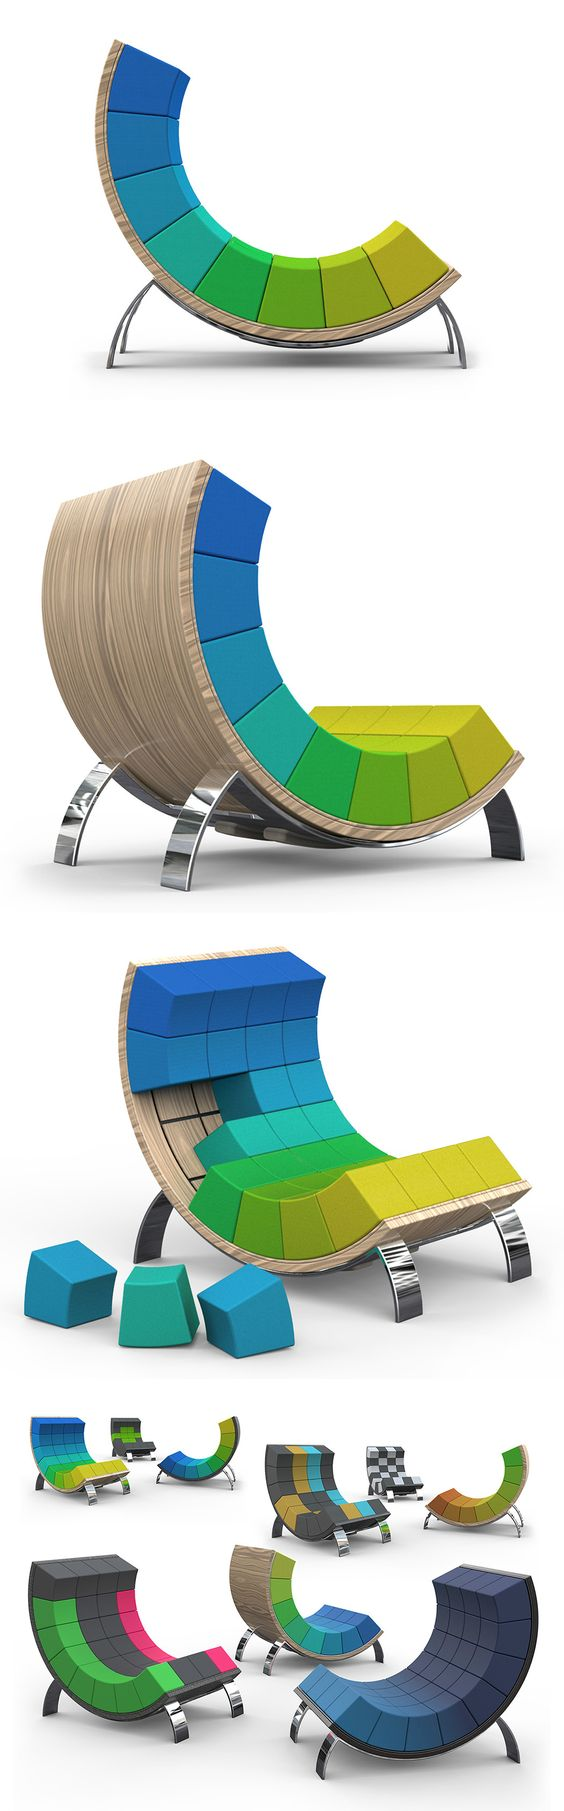 """The Ego """"smart"""" chair lets you put your own twist on the design in a simple and fun way! Read more at Yanko Design"""